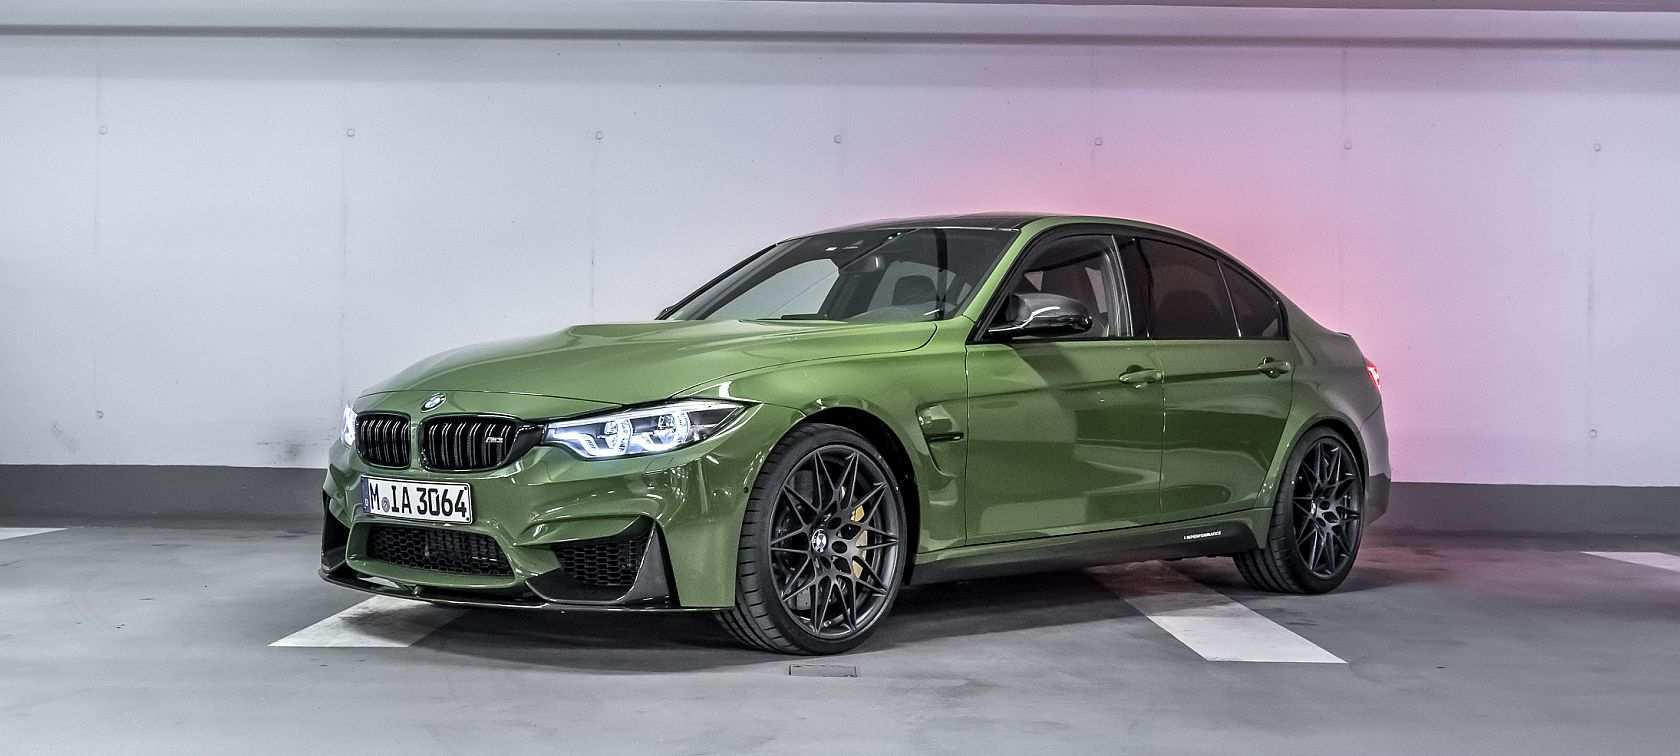 93 Best 2020 BMW M4 Colors Reviews